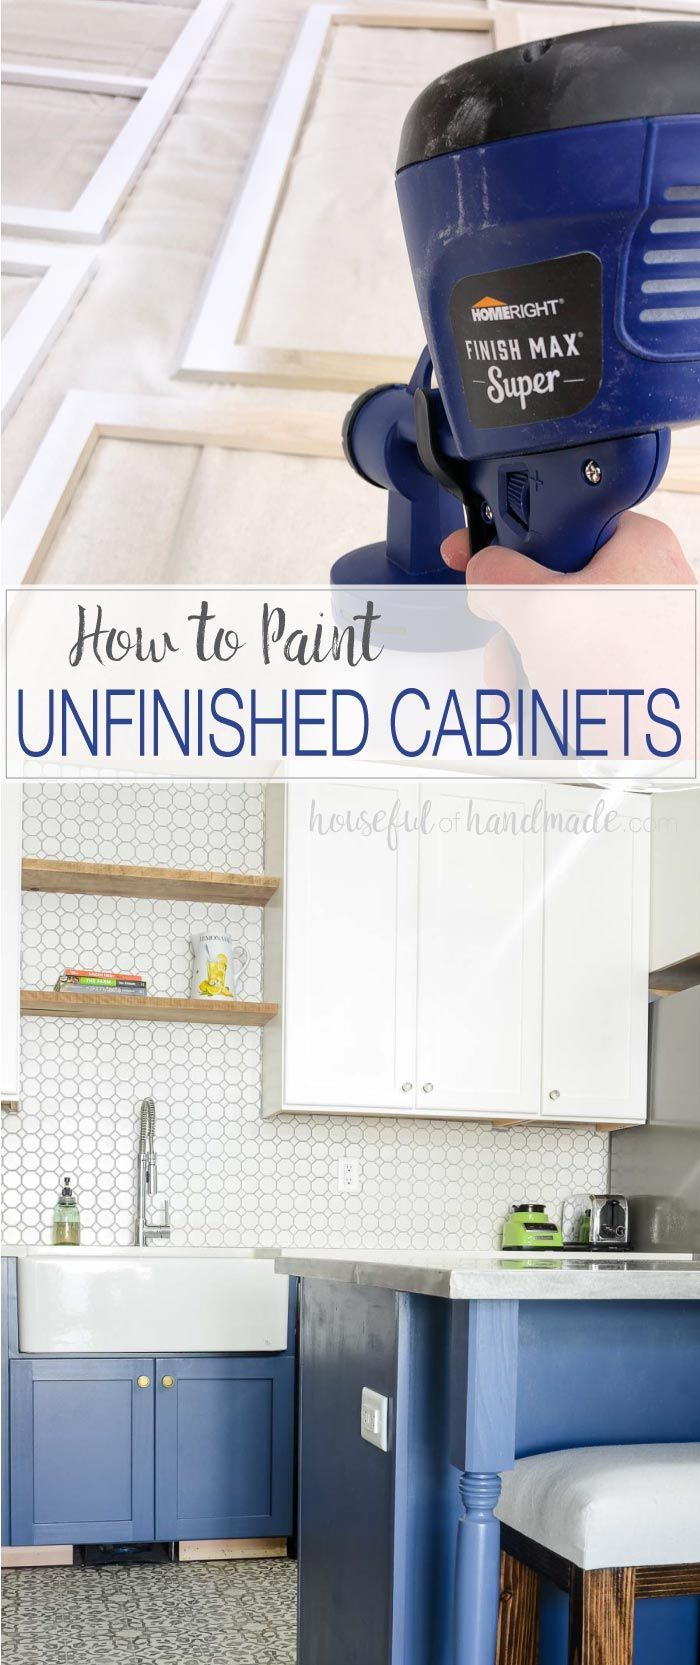 Learn How To Paint Unfinished Cabinets To Get The Kitchen Of Your Dreams Whether You Bu Unfinished Cabinets Unfinished Kitchen Cabinets Budget Kitchen Remodel